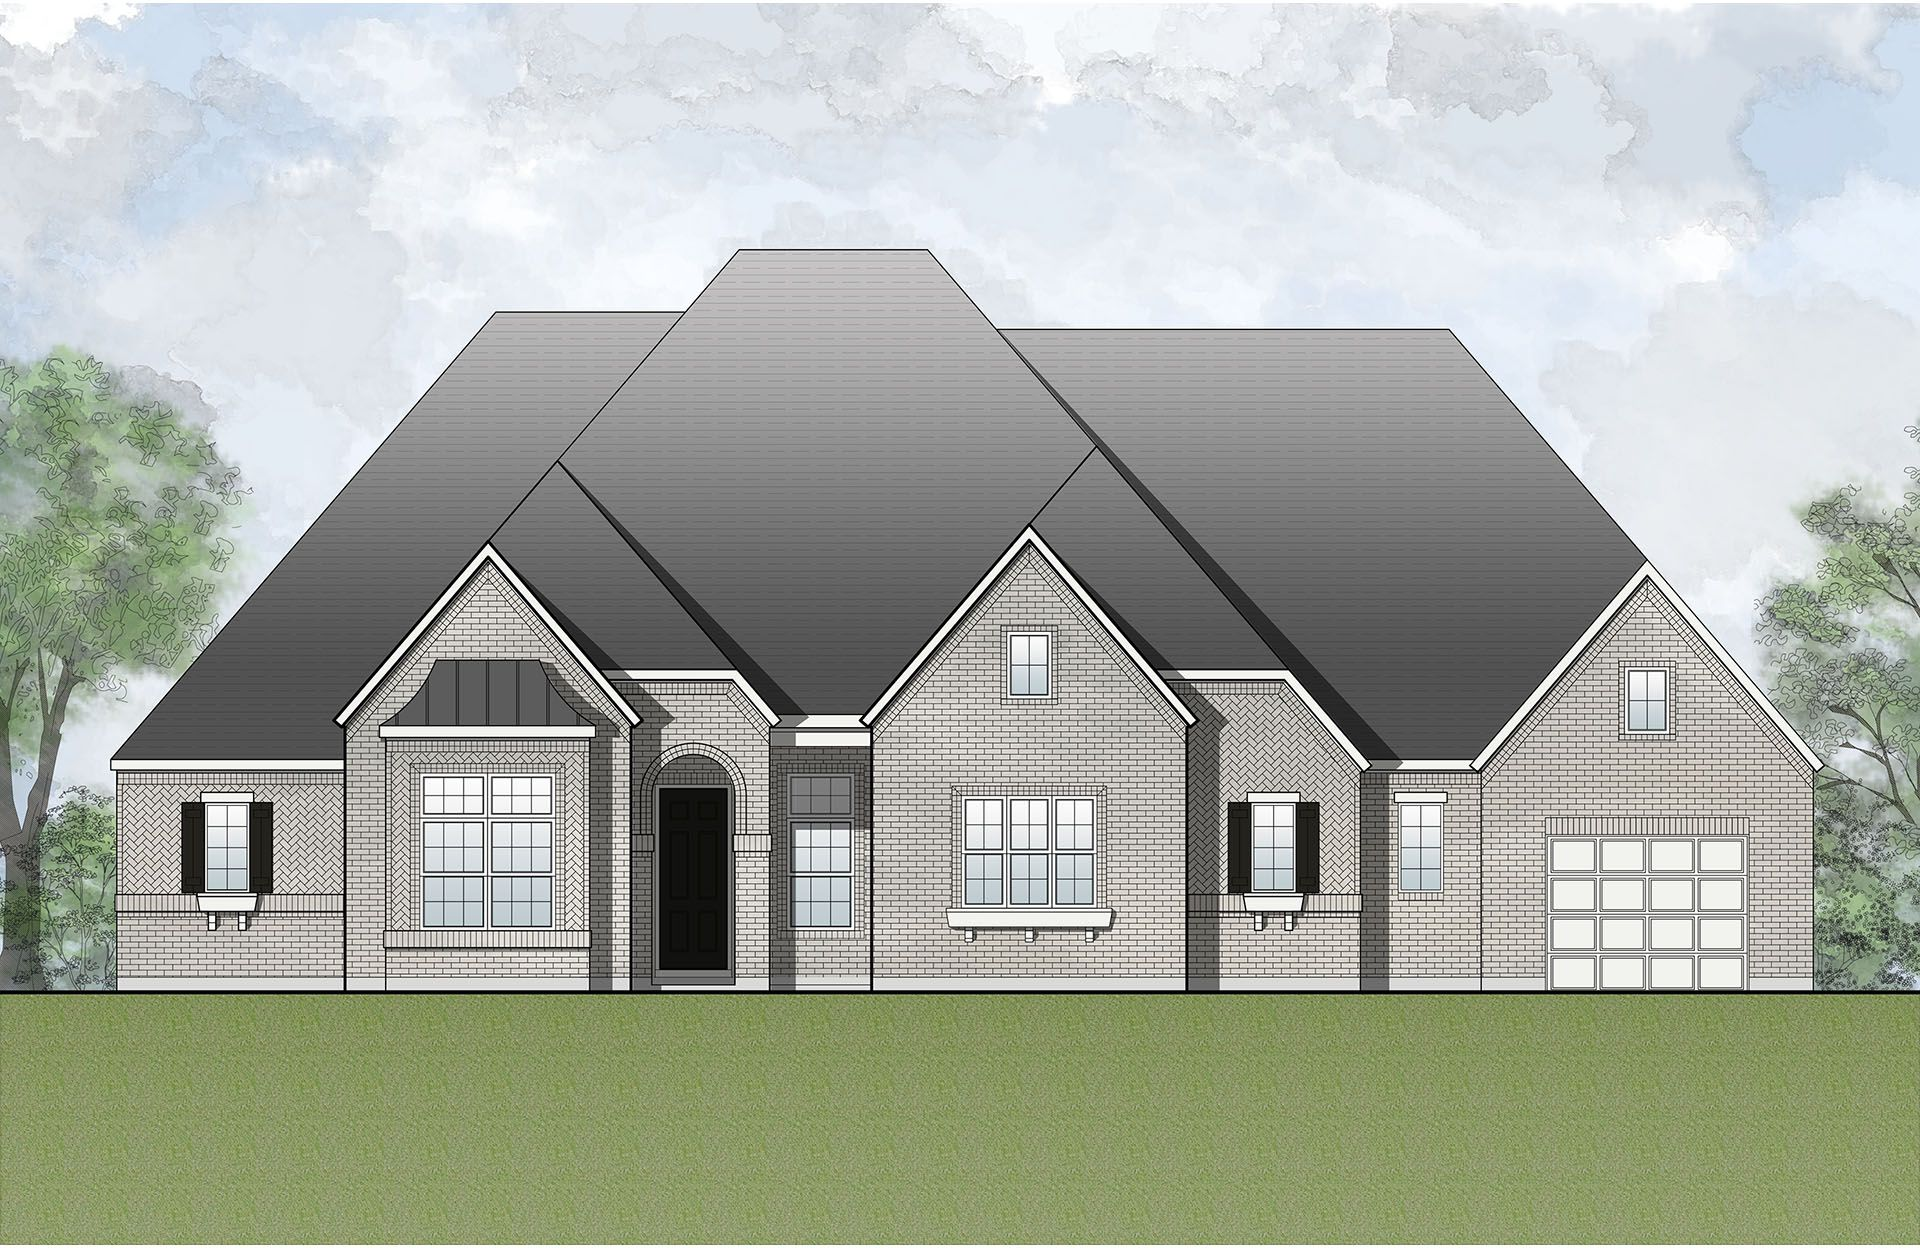 Single Family for Active at Woodtrace - Marley 33923 Redwood Park Pinehurst, Texas 77362 United States